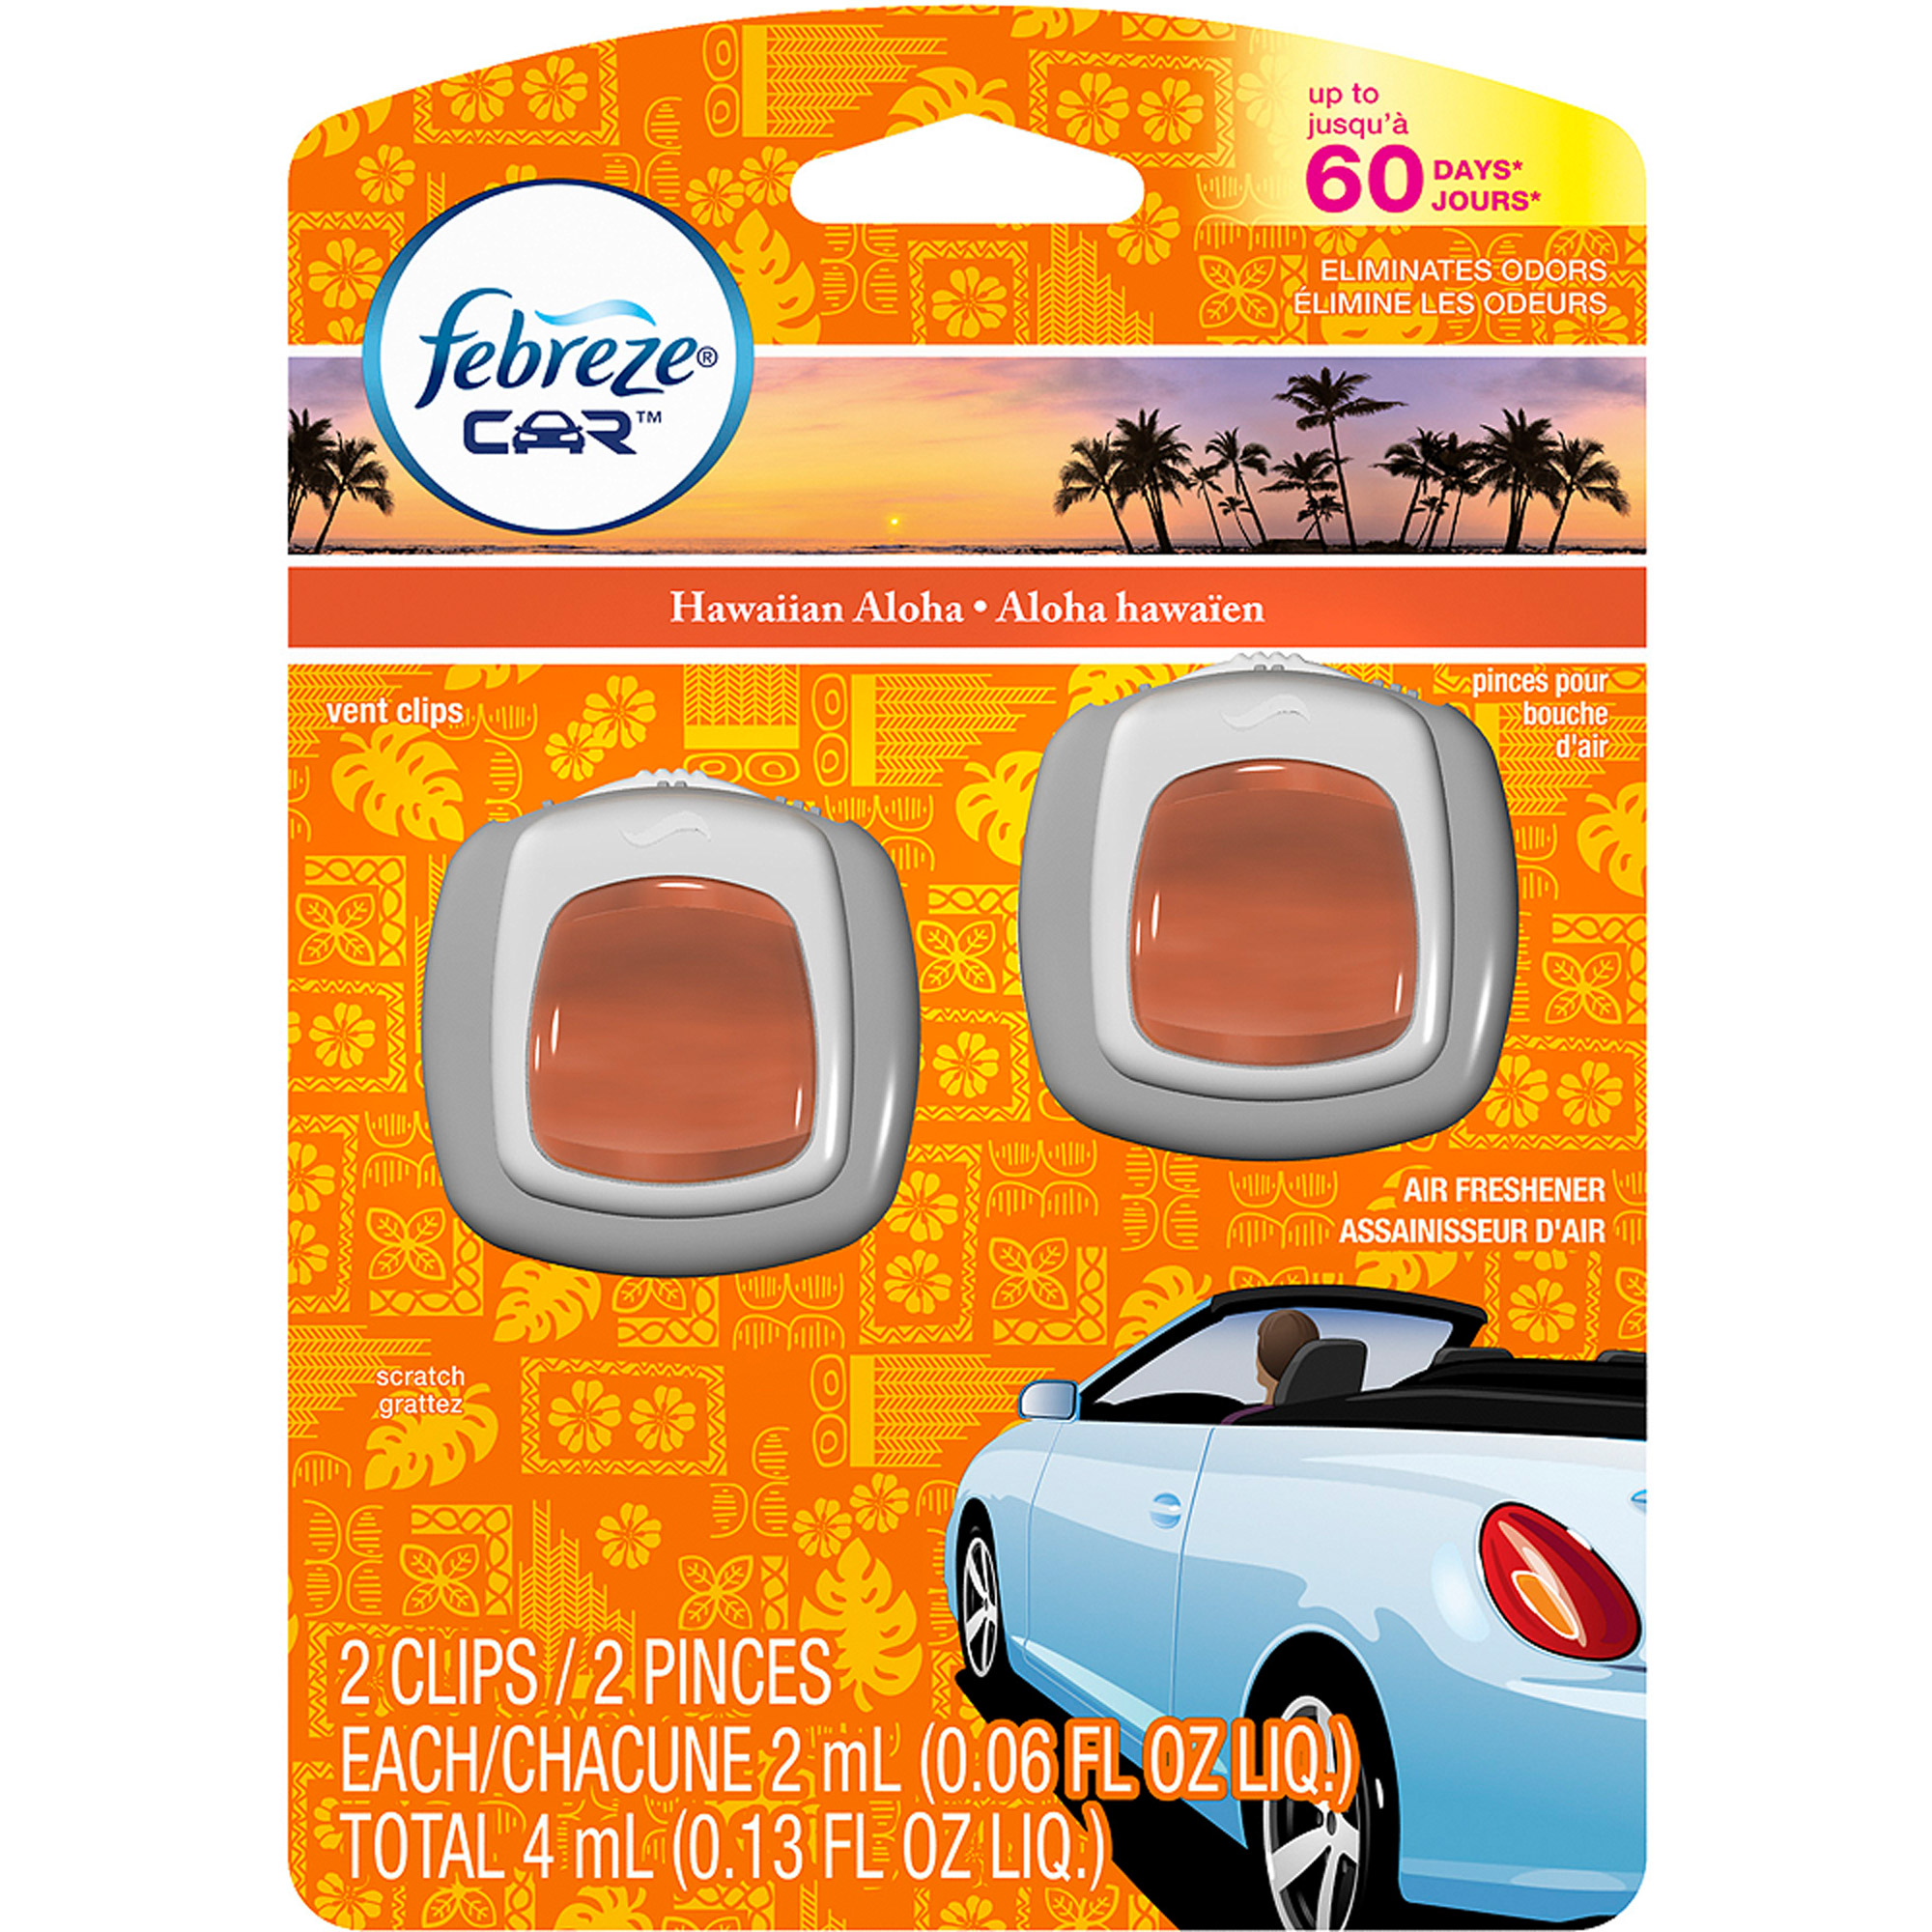 Febreze Car Vent Clips Hawaiian Aloha Air Freshener (2 ct; 2 mL ea)